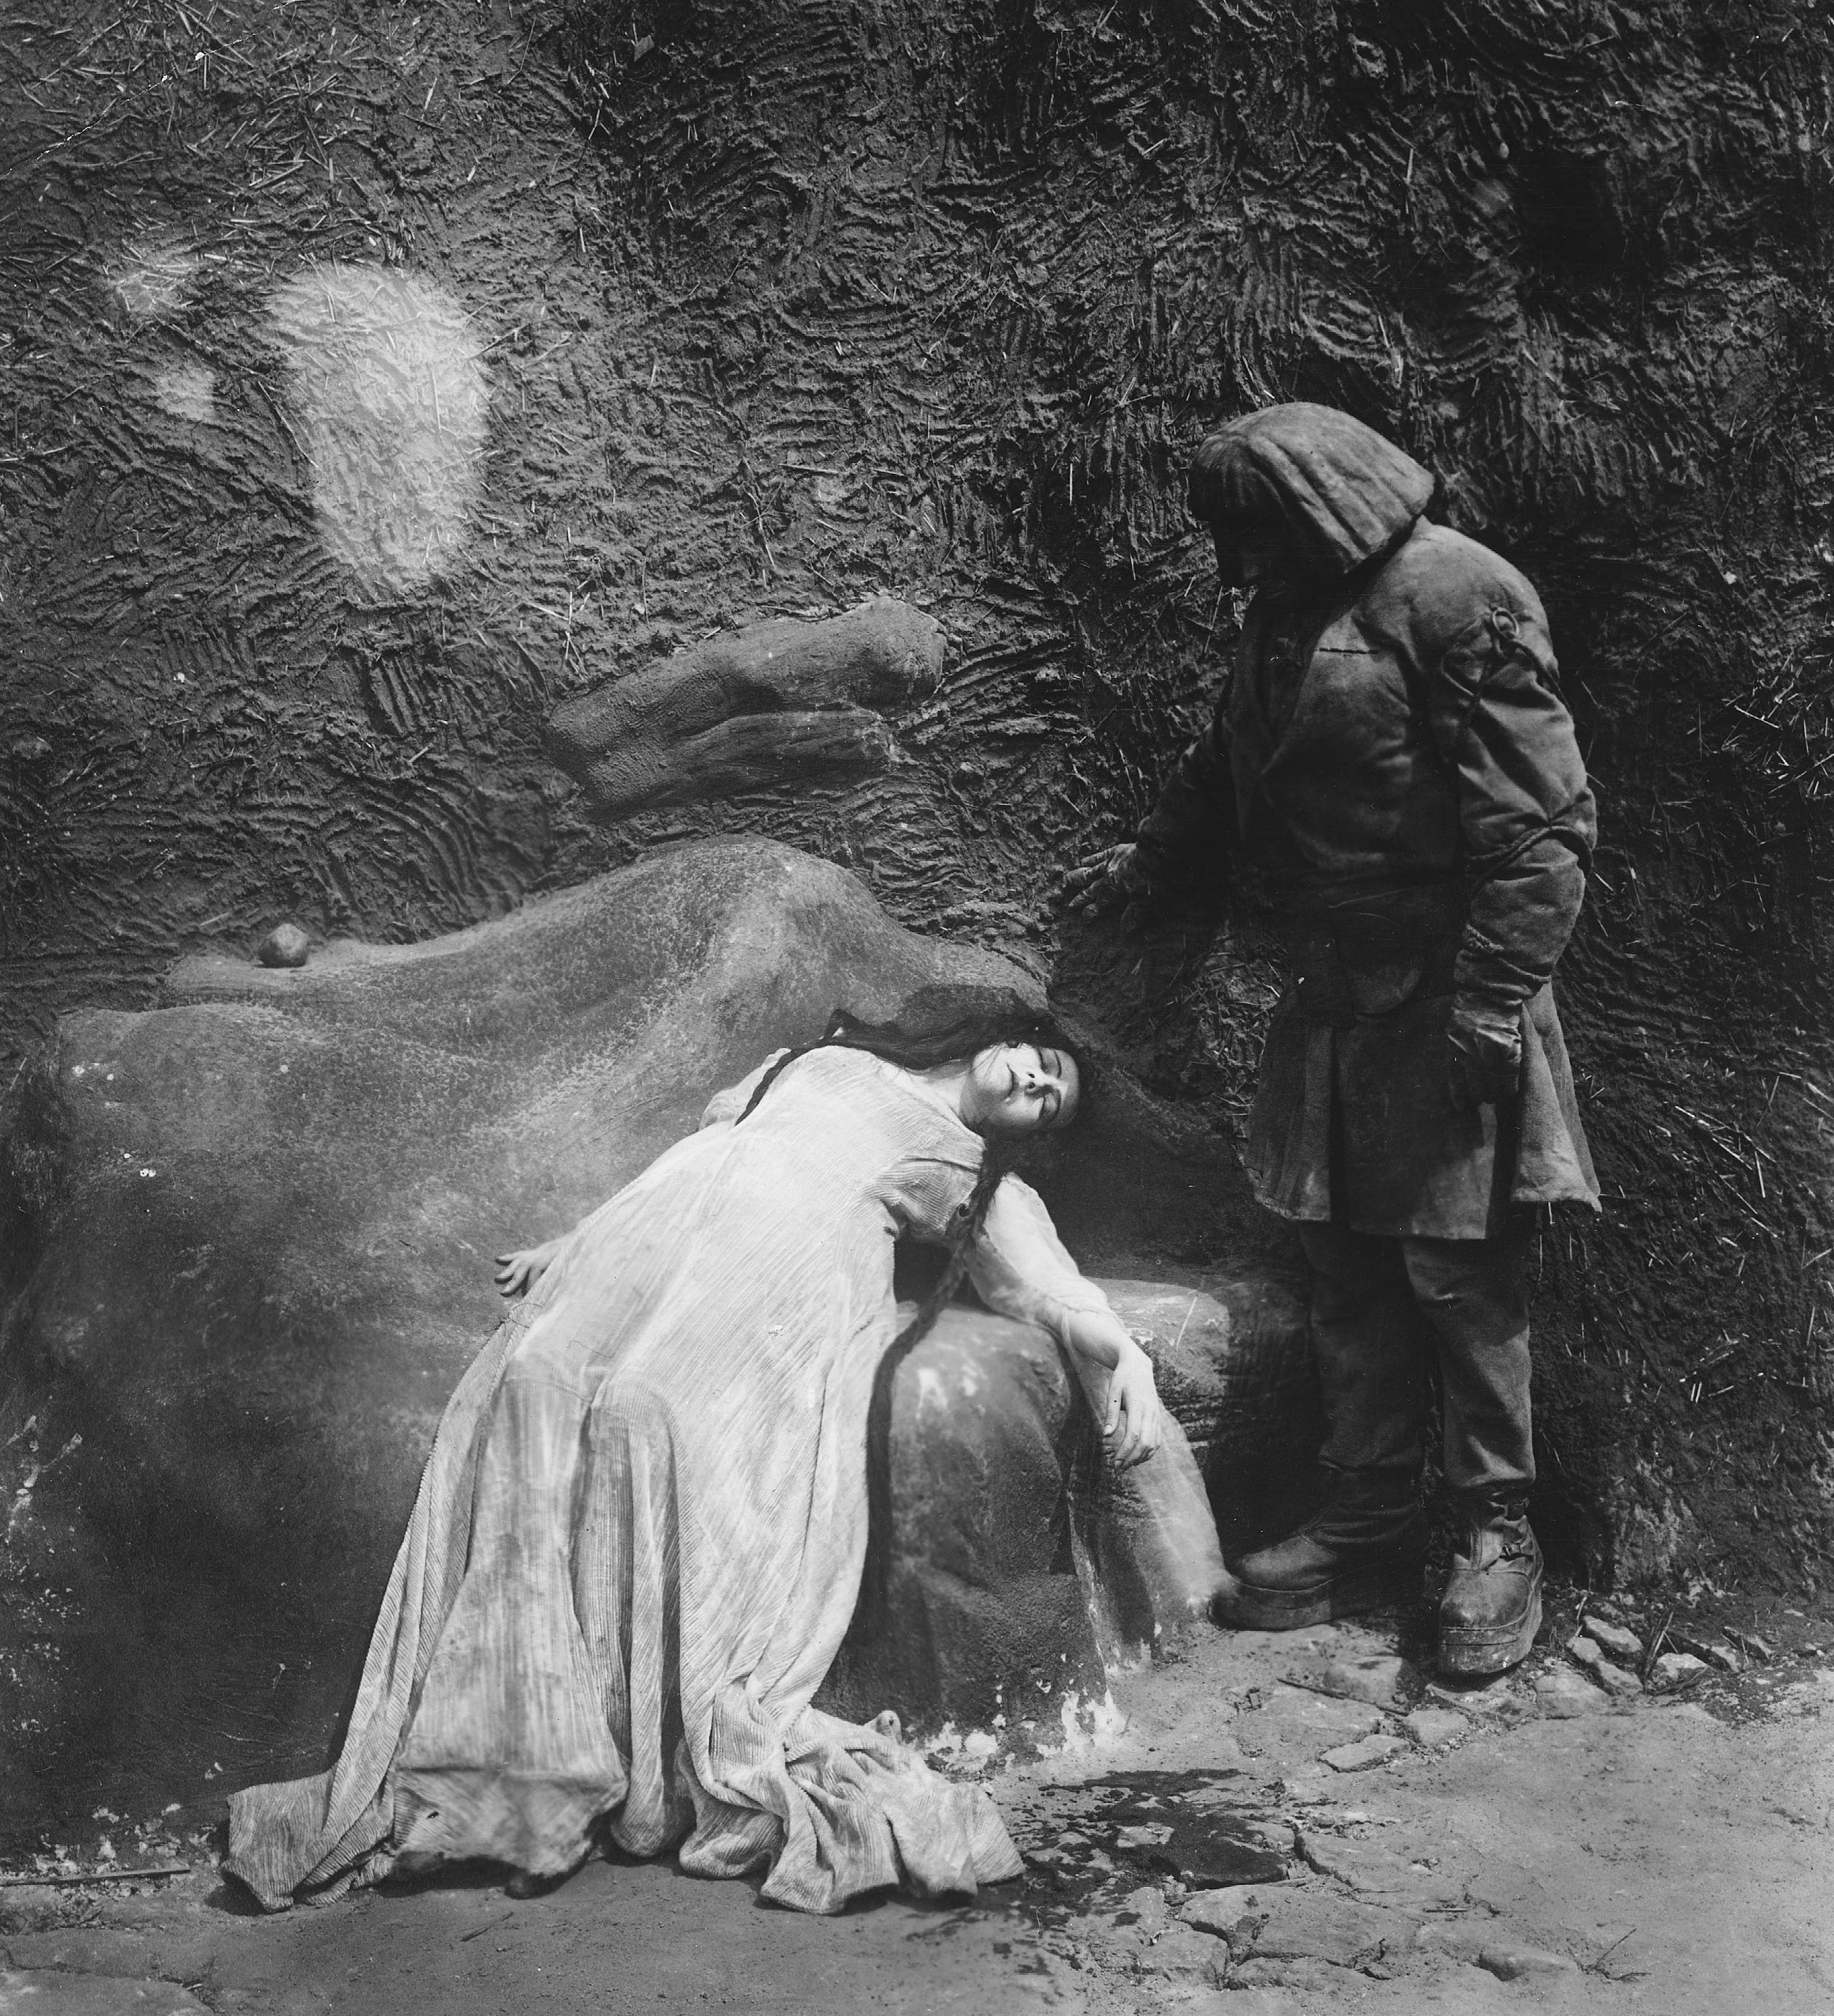 TITLE: GOLEM, WIE ER IN DIE WELT KAM, DER ¥ PERS: WEGENER, PAUL / SALMONOVA, LYDA ¥ YEAR: 1920 ¥ DIR: WEGENER, PAUL ¥ REF: GOL035AW ¥ CREDIT: [ THE KOBAL COLLECTION / UFA ]